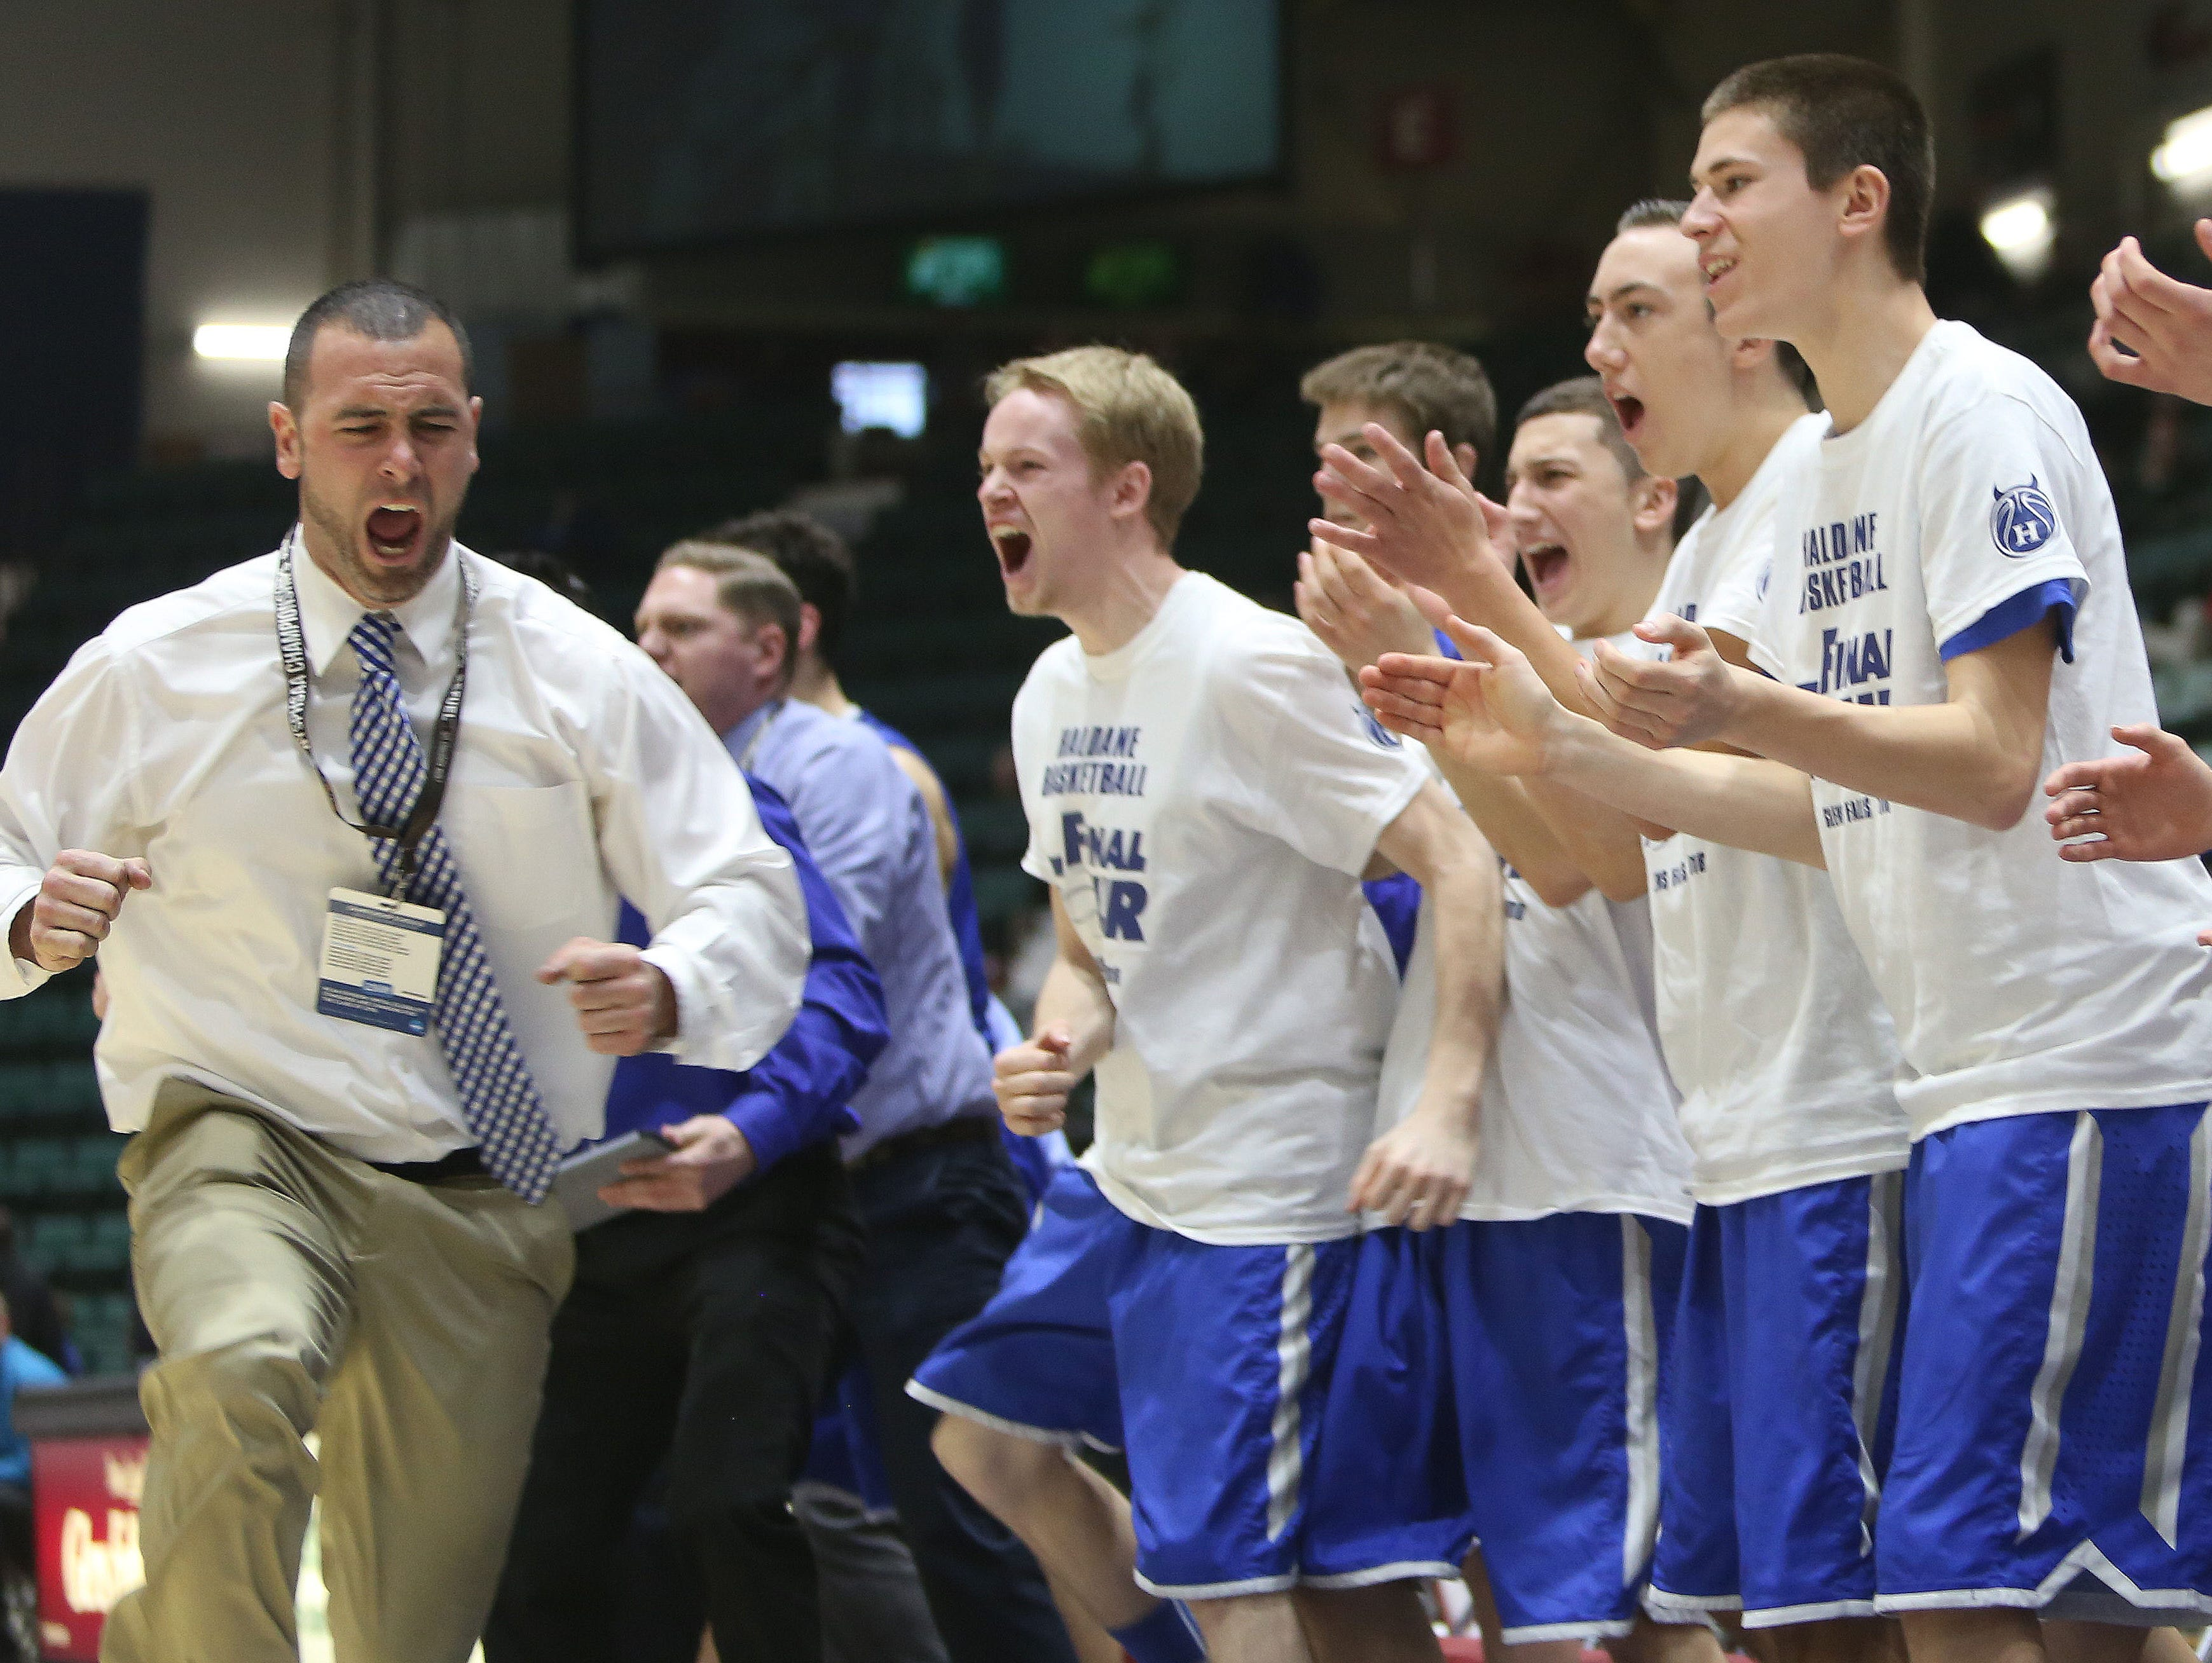 From left, Haldane coach Joe Virgadamo and his team react to a big basket late in the game against Moravia during the boys Class C semifinal at the Glens Falls Civic Center March 11, 2016. Haldane won the game 36-34.